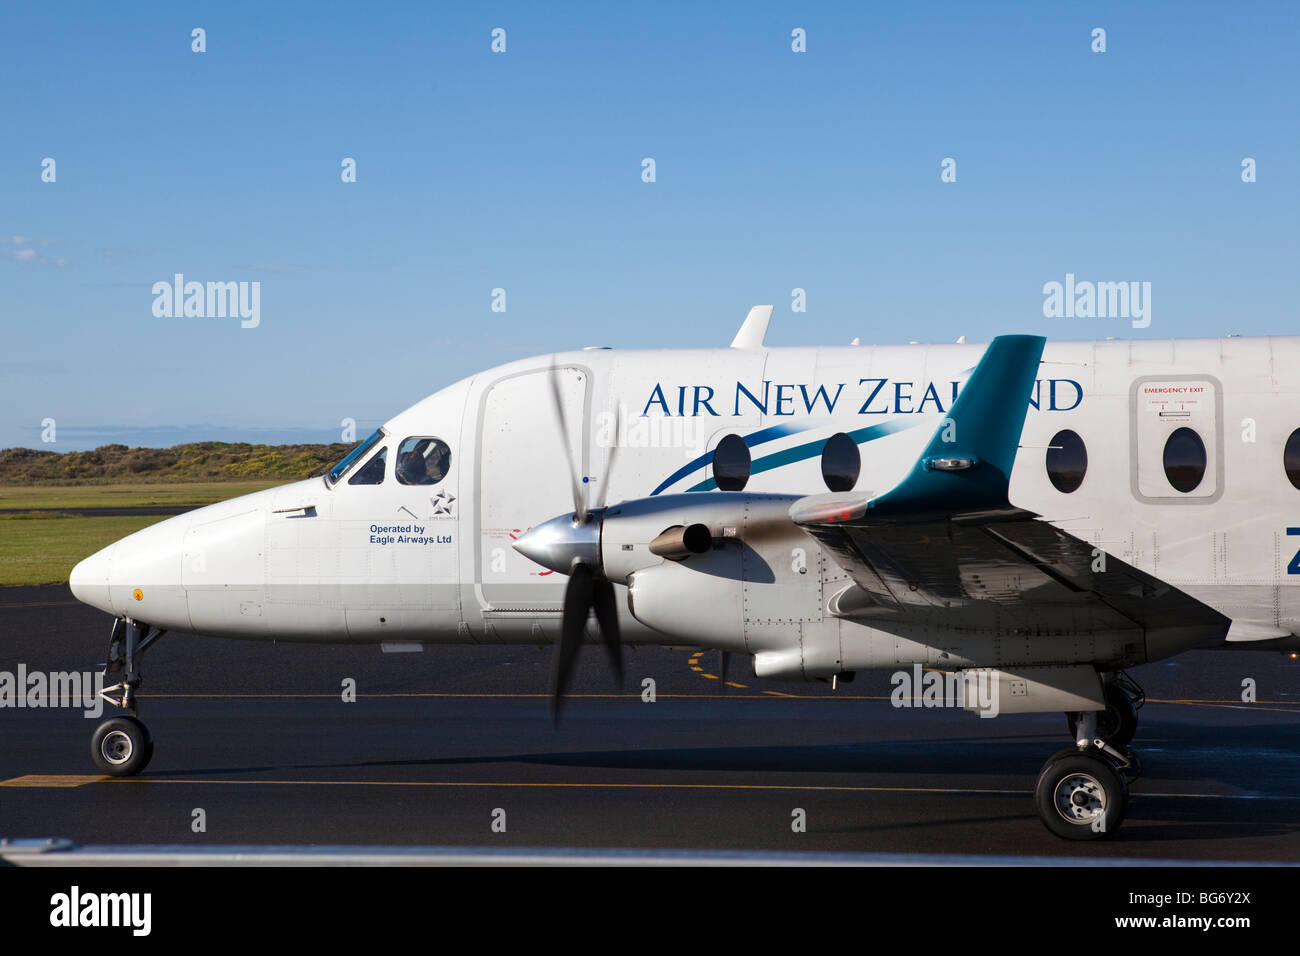 A Beech King 1900D operated by Air New Zealand in 2009, at the Wanganui airport. - Stock Image